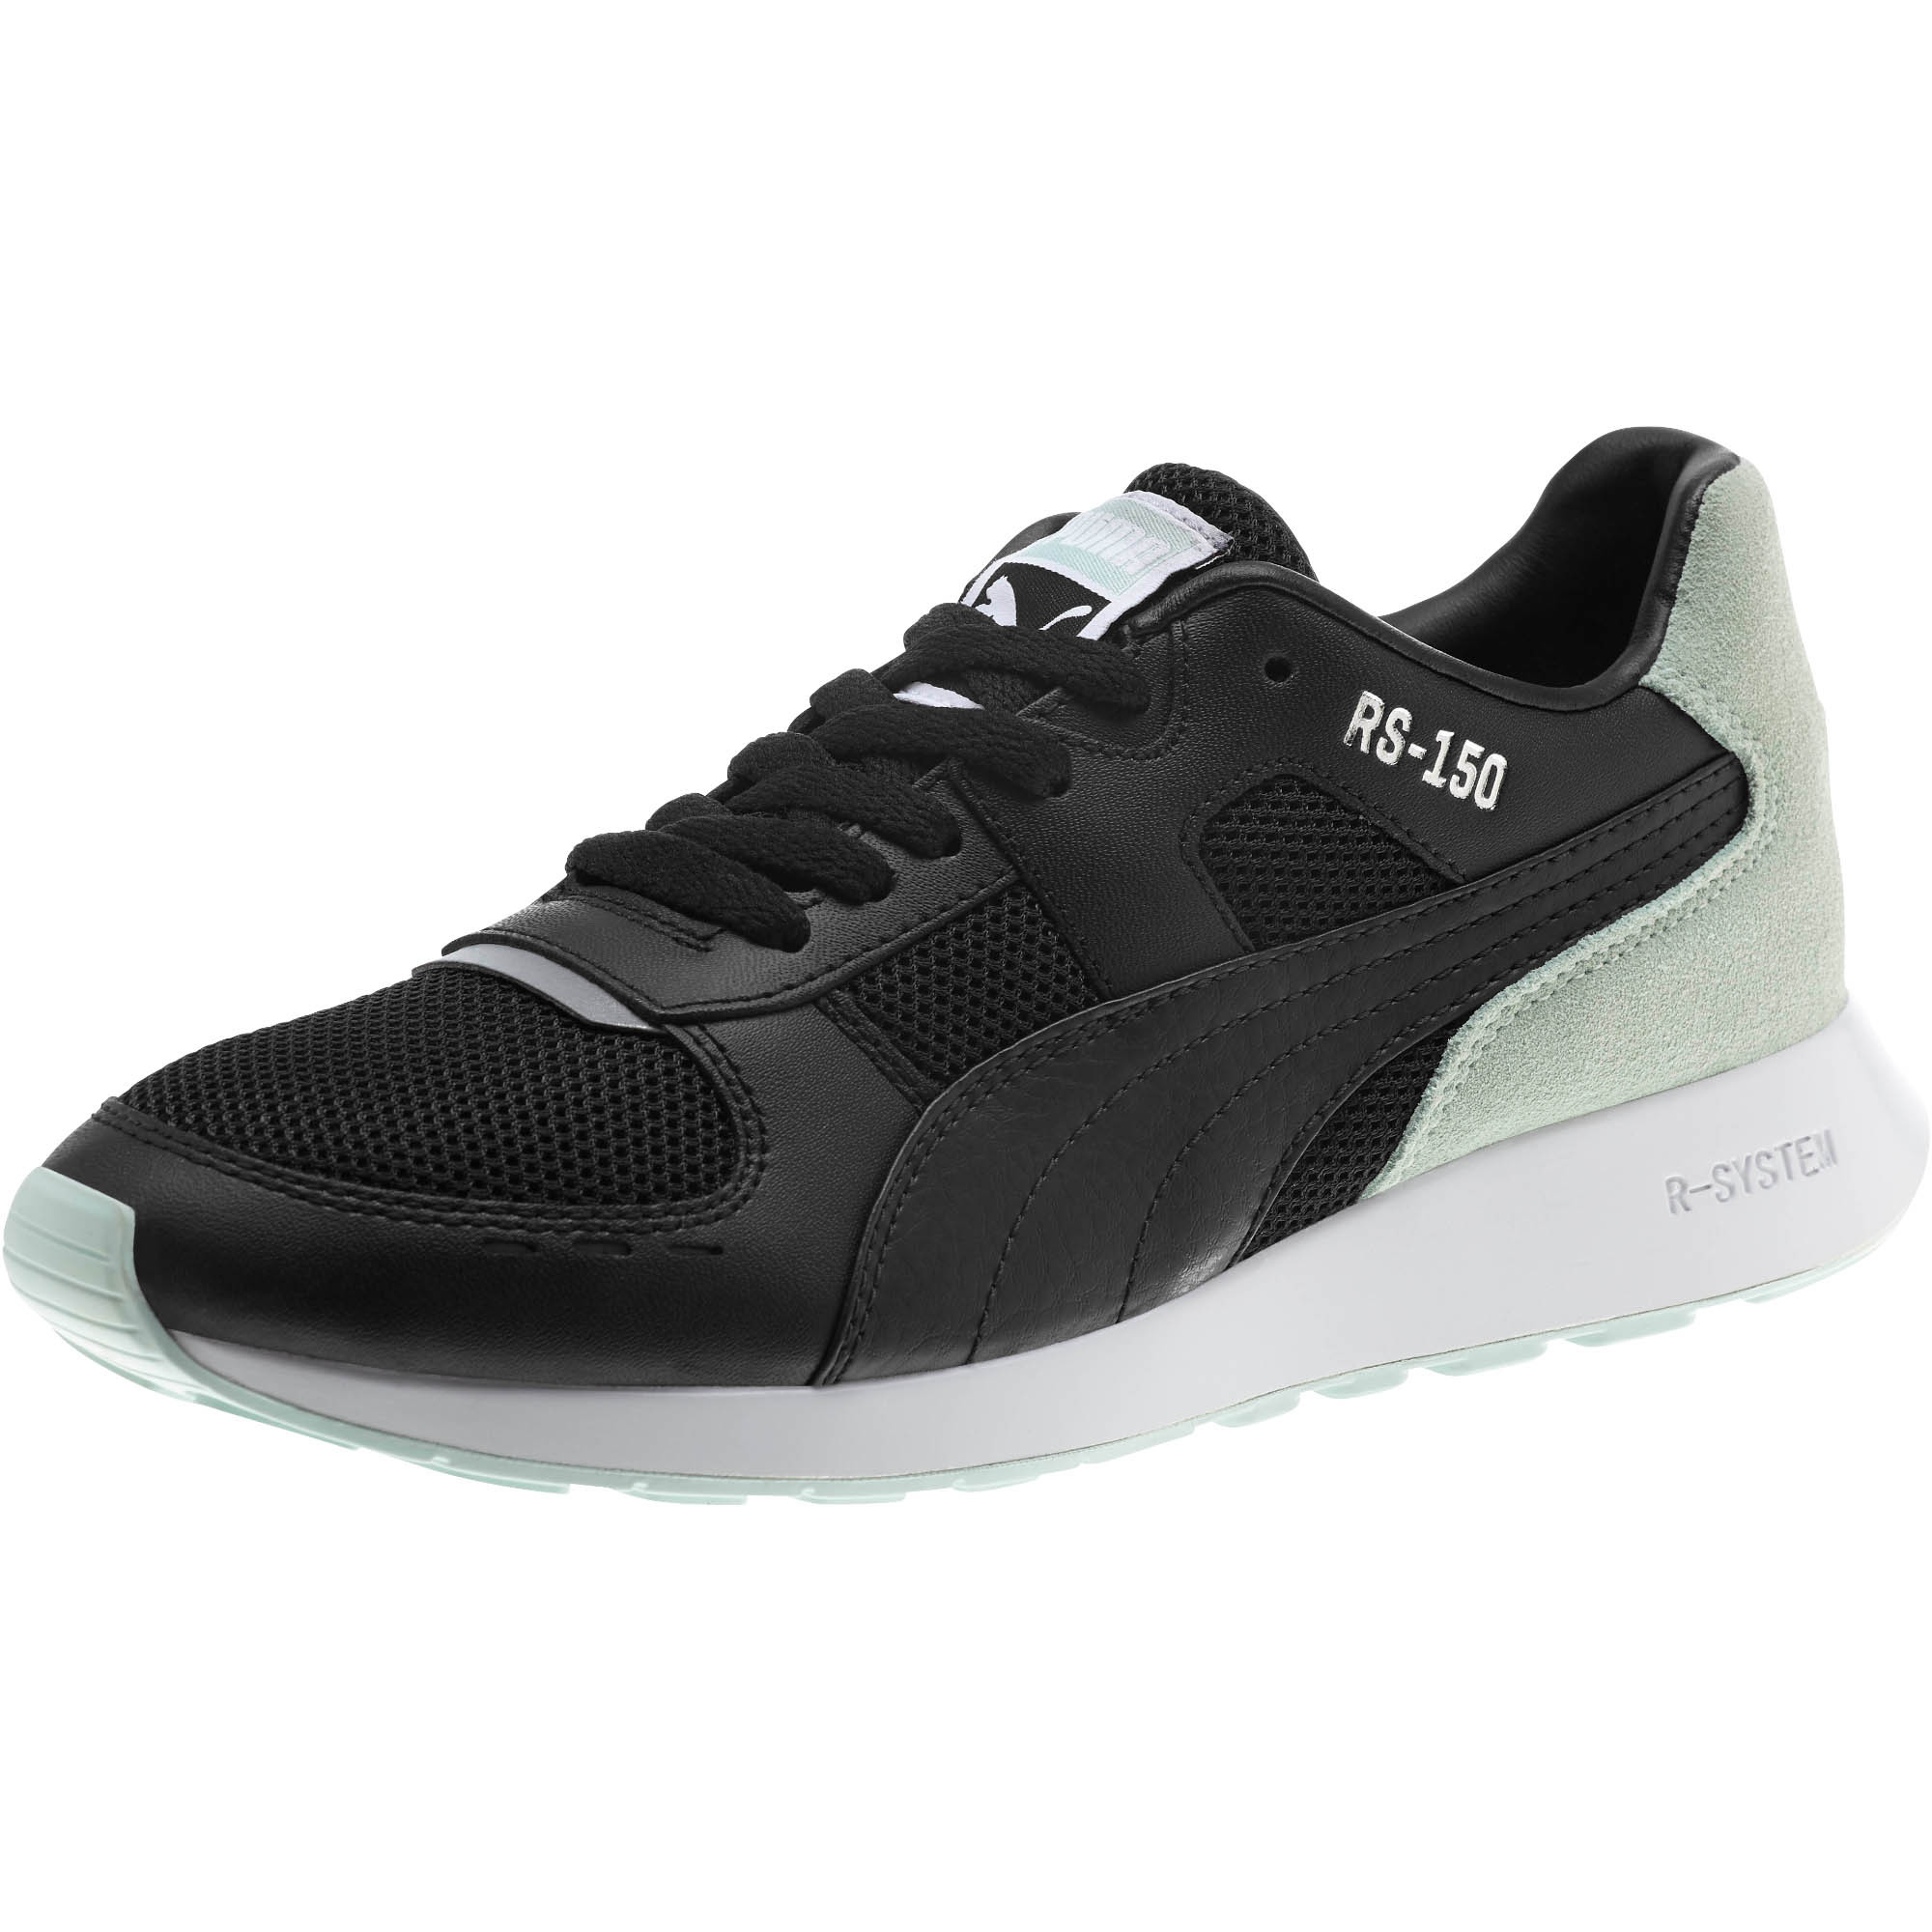 PUMA-Women-039-s-RS-150-Contrast-Sneakers thumbnail 9